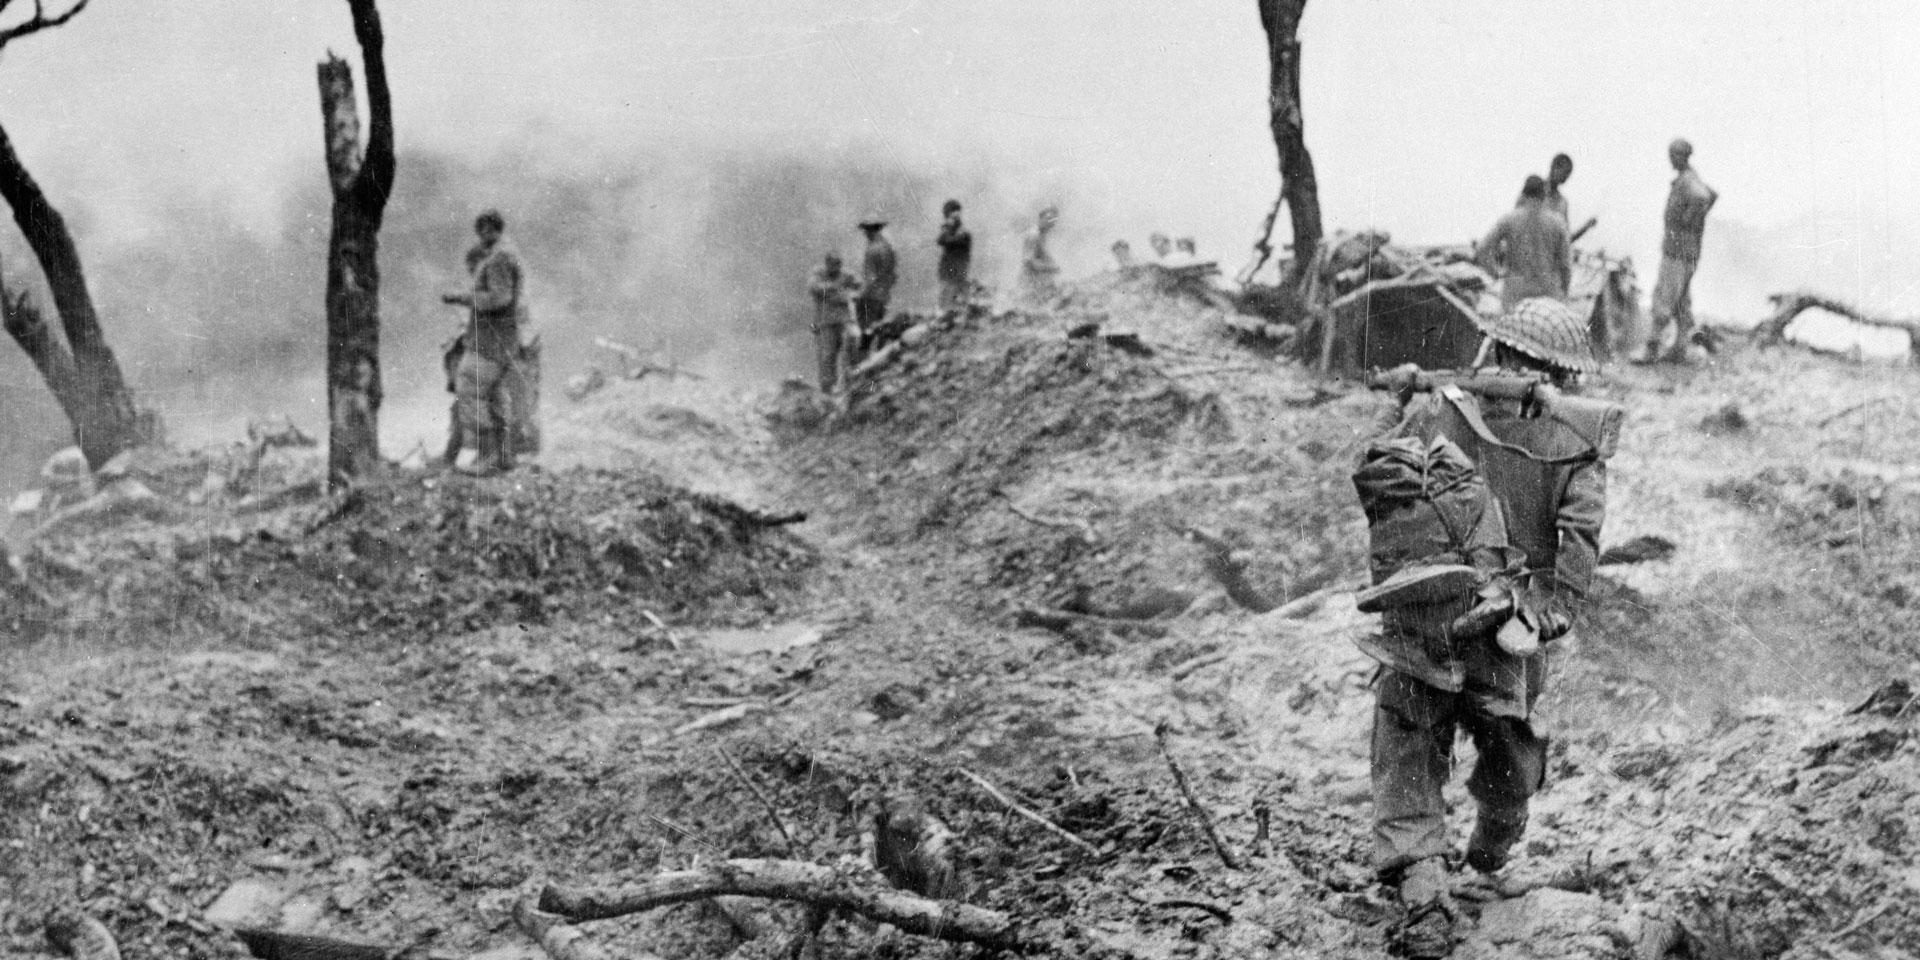 10th Gurkha Rifles clearing enemy positions on 'Scraggy' hill during the Japanese drive towards Imphal in April 1944